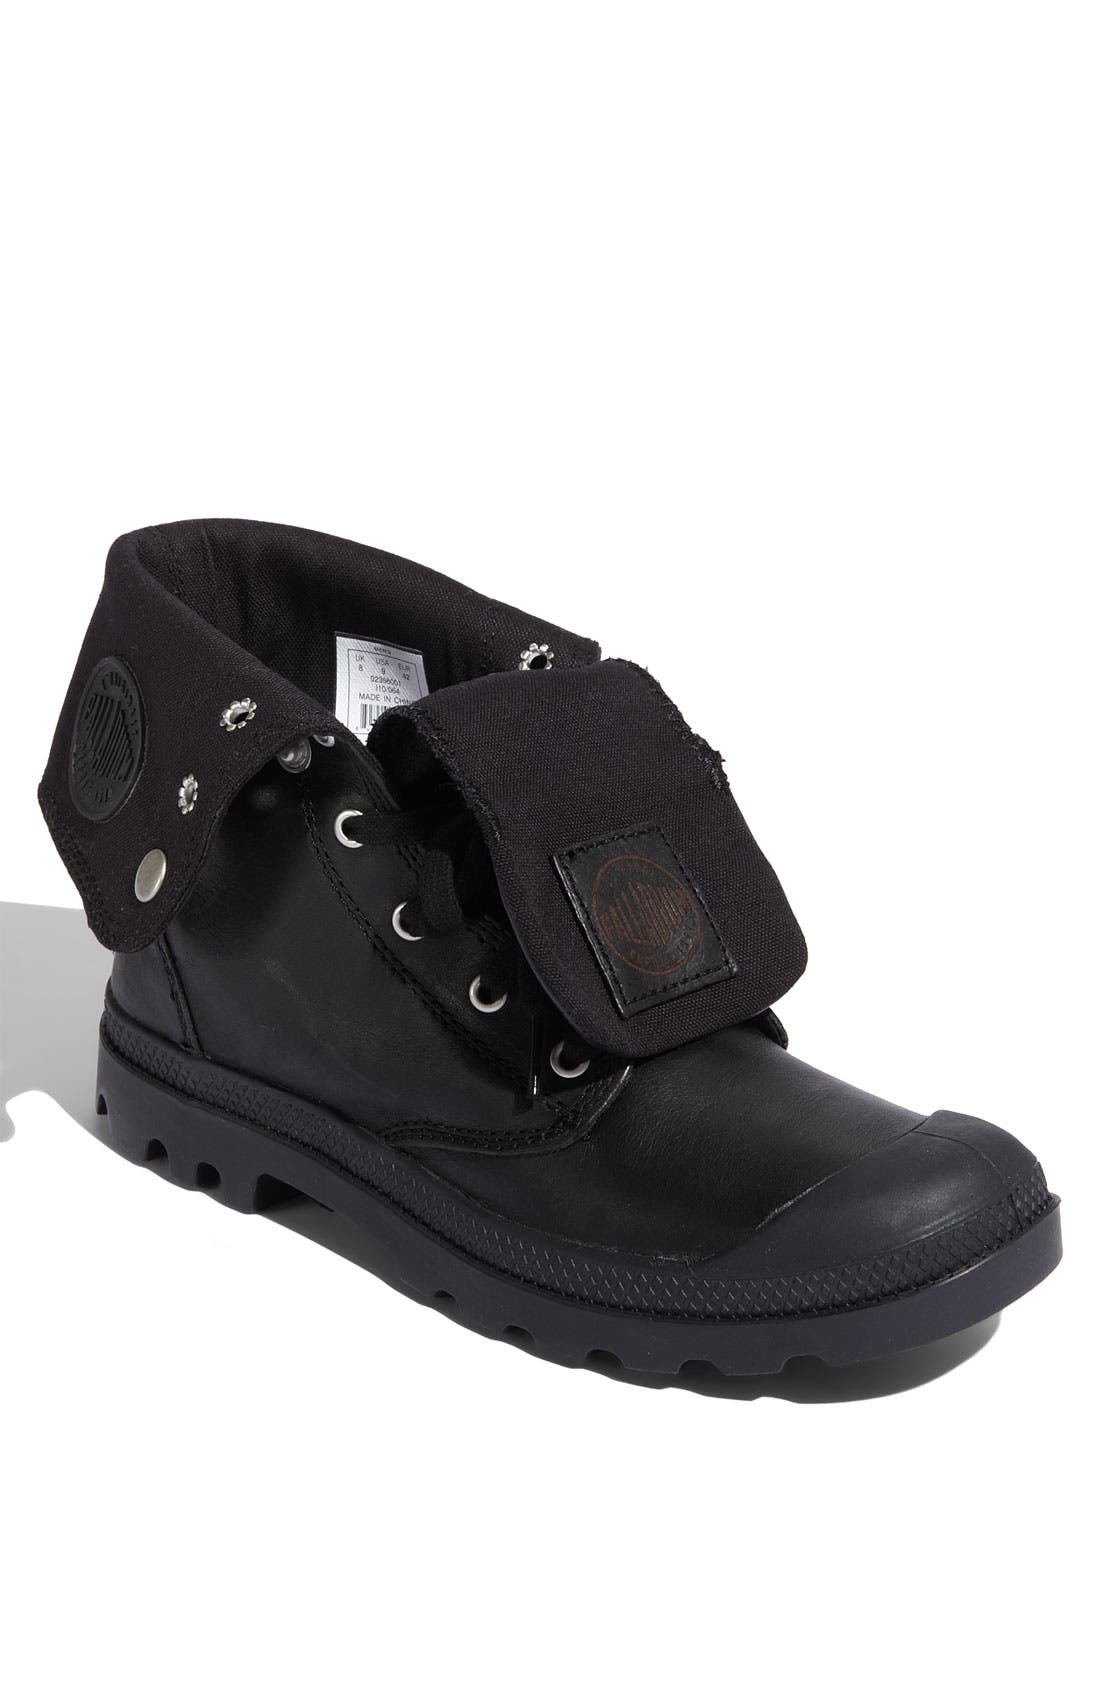 Main Image - Palladium 'Baggy' Leather Roll Down Boot